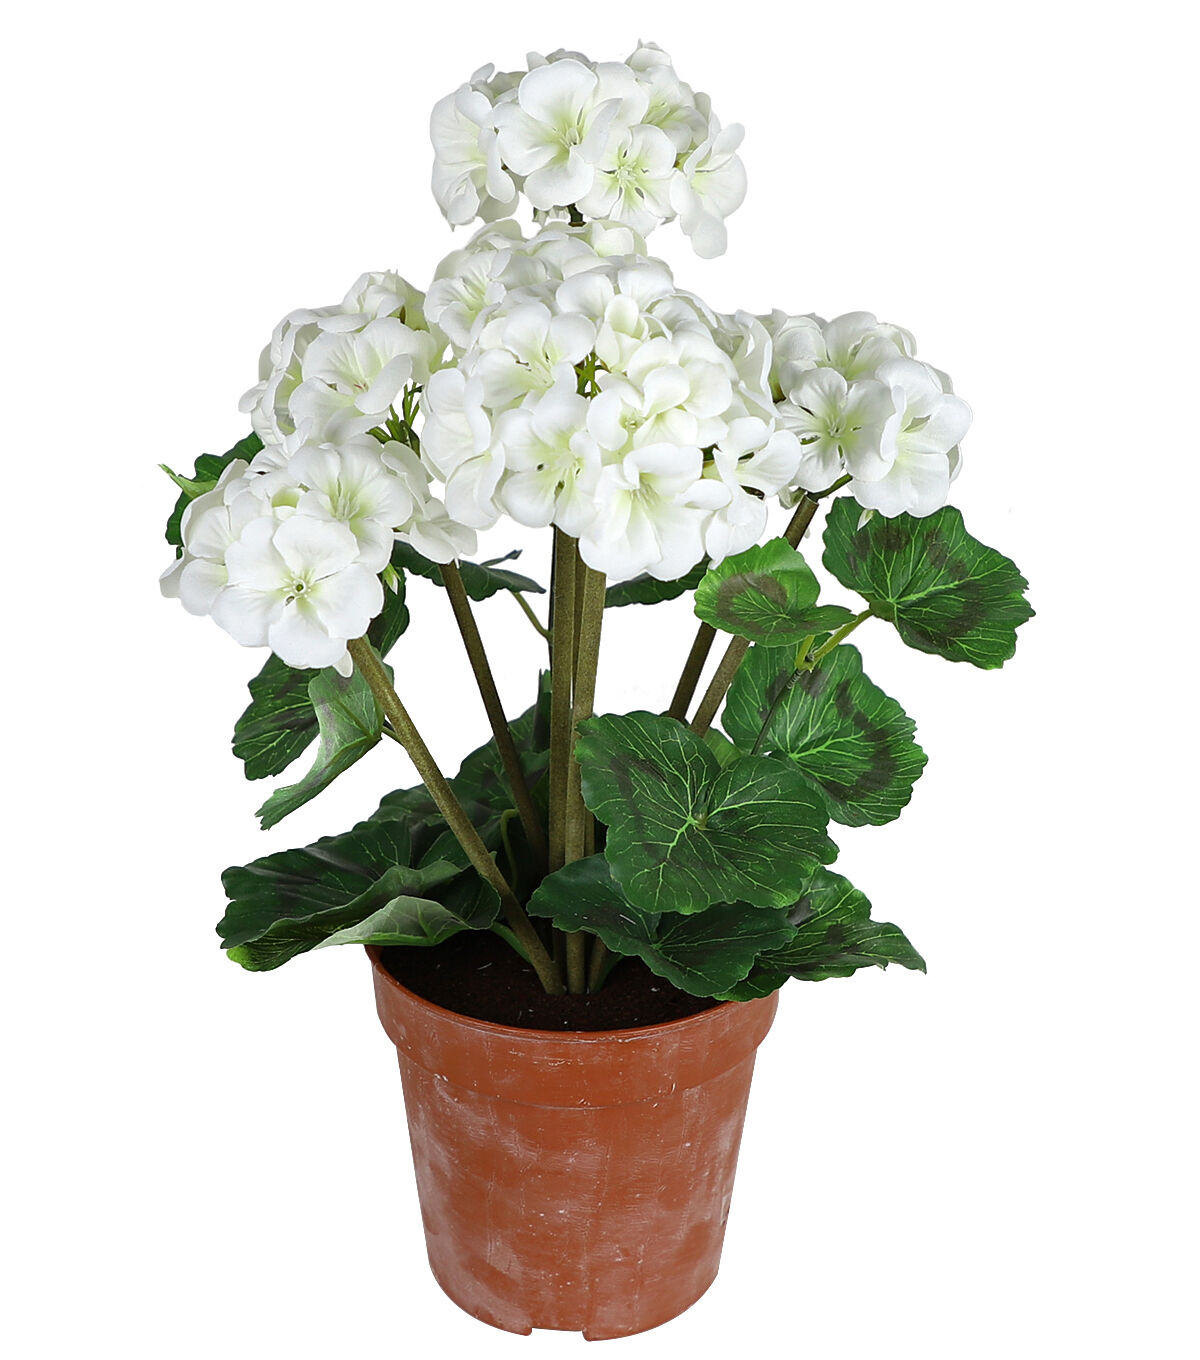 faux white plants for spring decor from joann stores